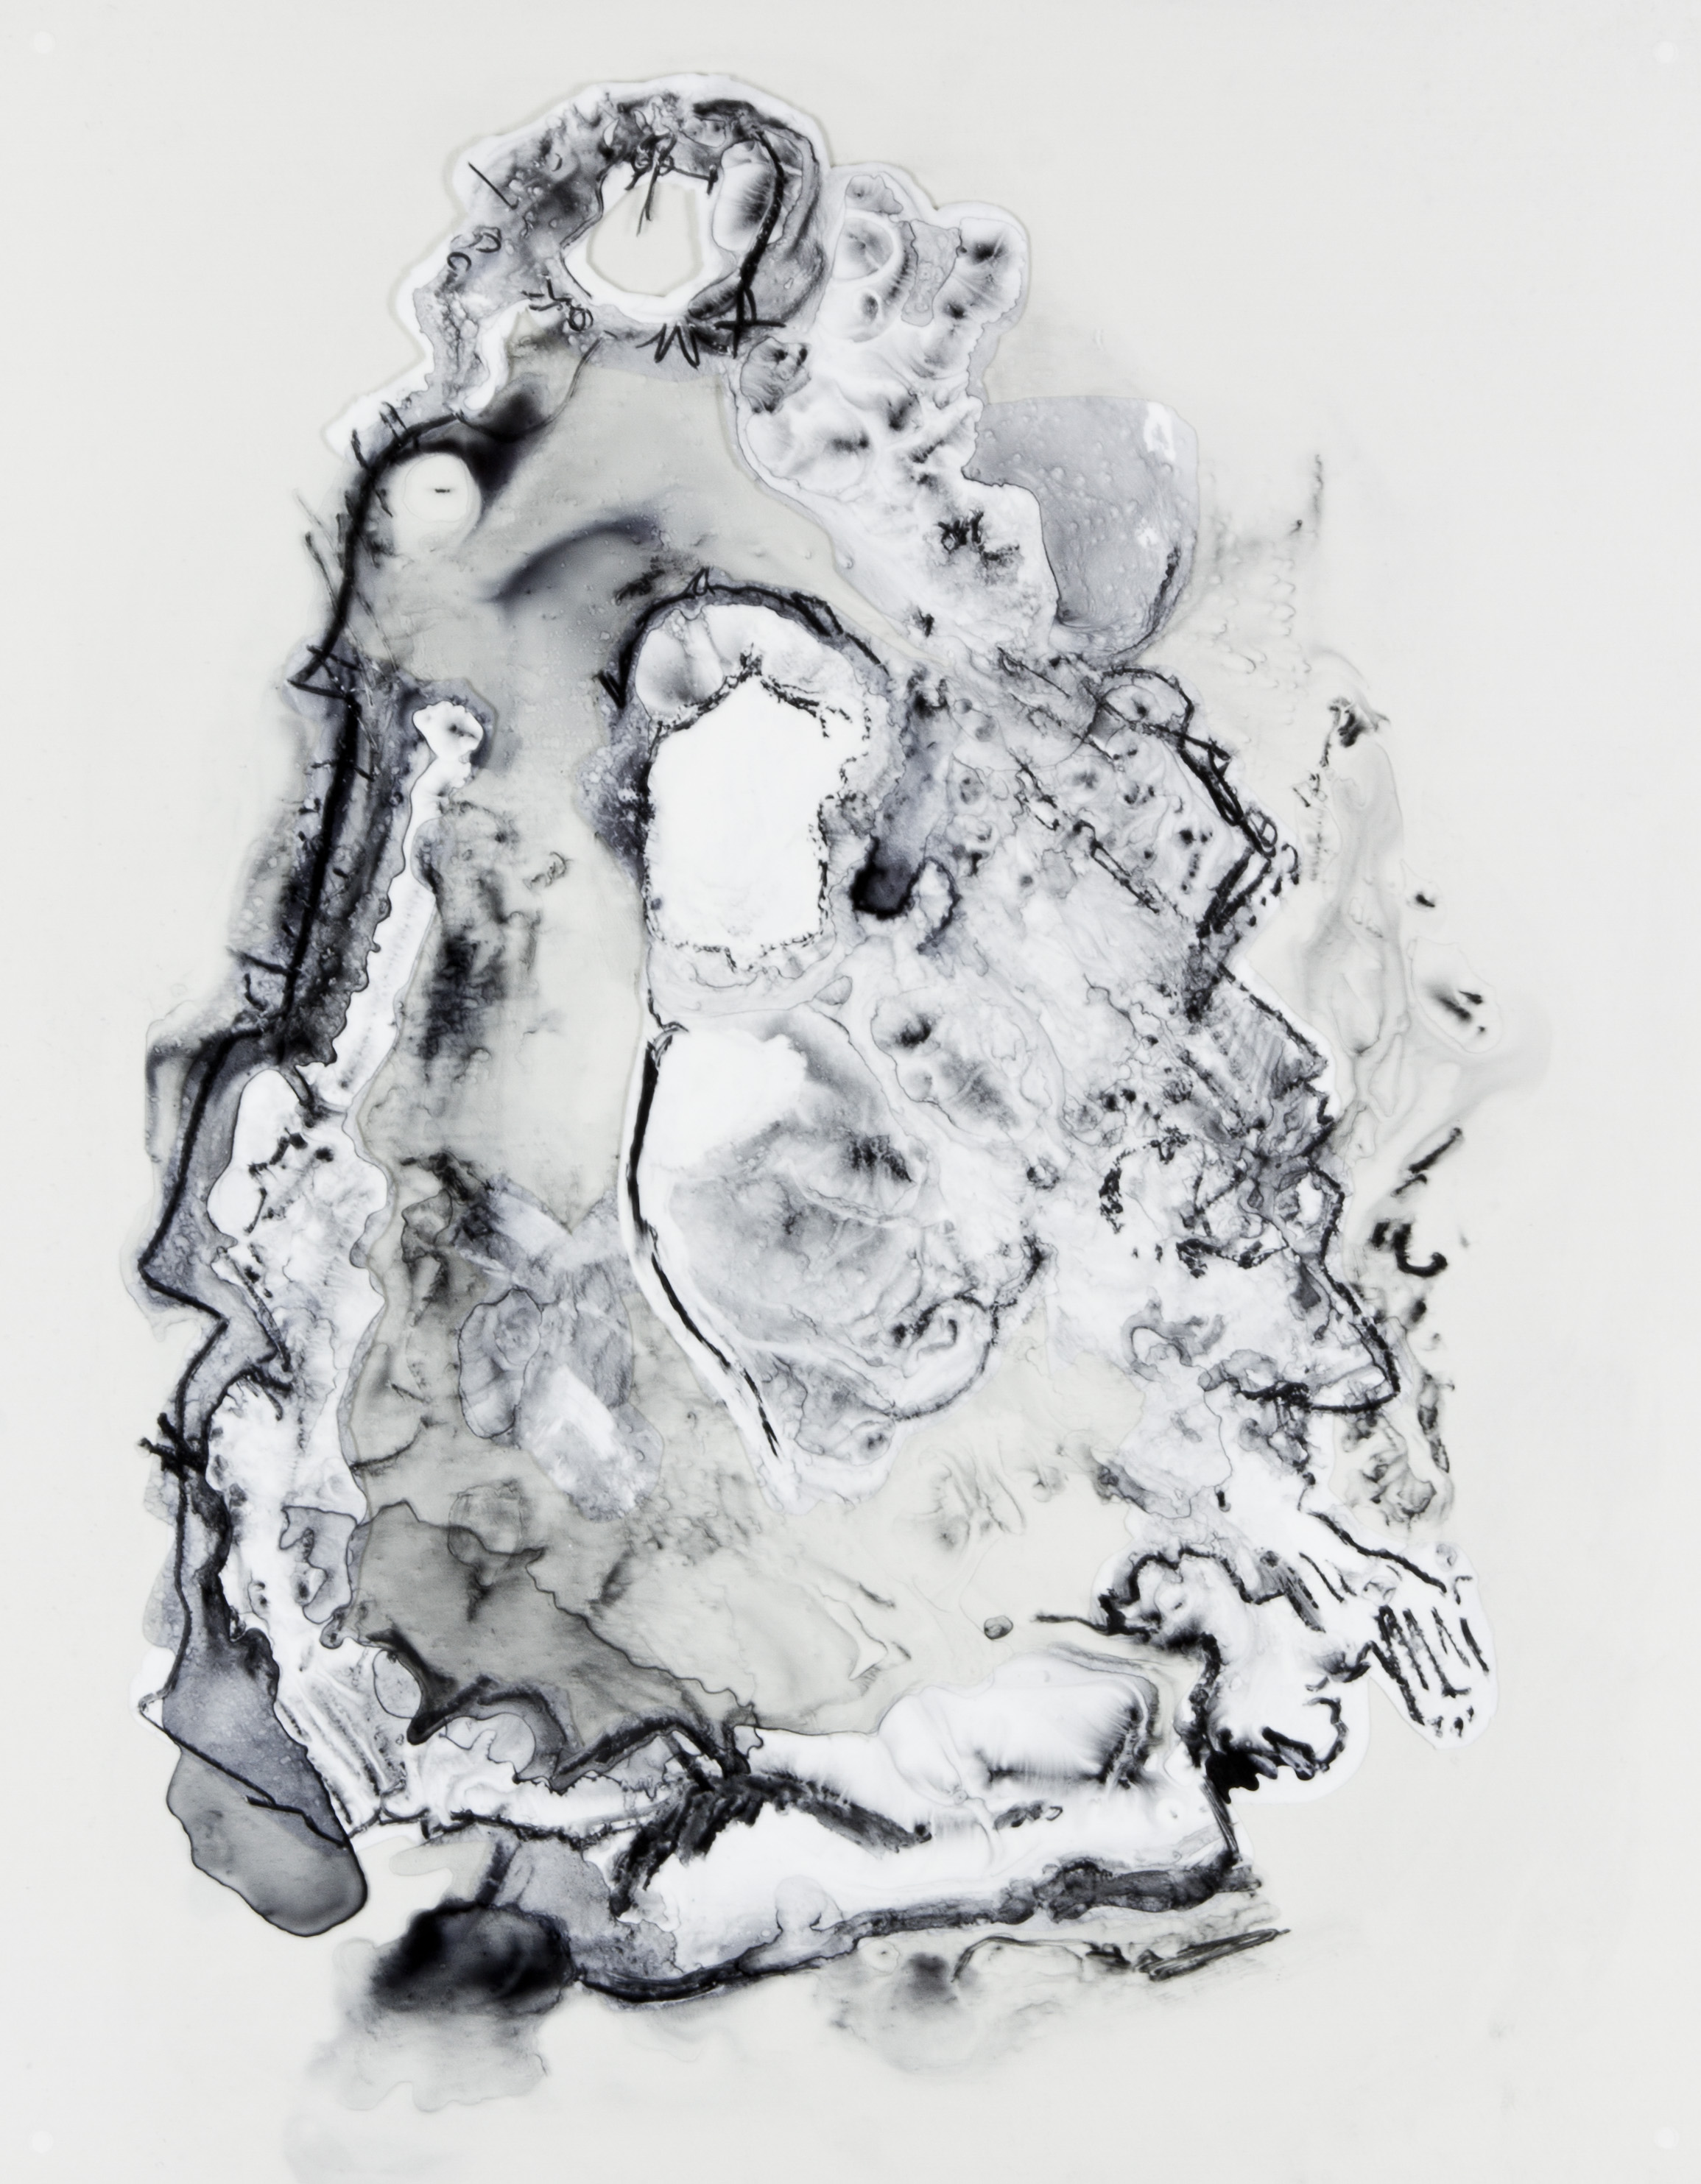 Jug, 2017, 19x24 inches, Watercolor and acrylic on transparent mylar